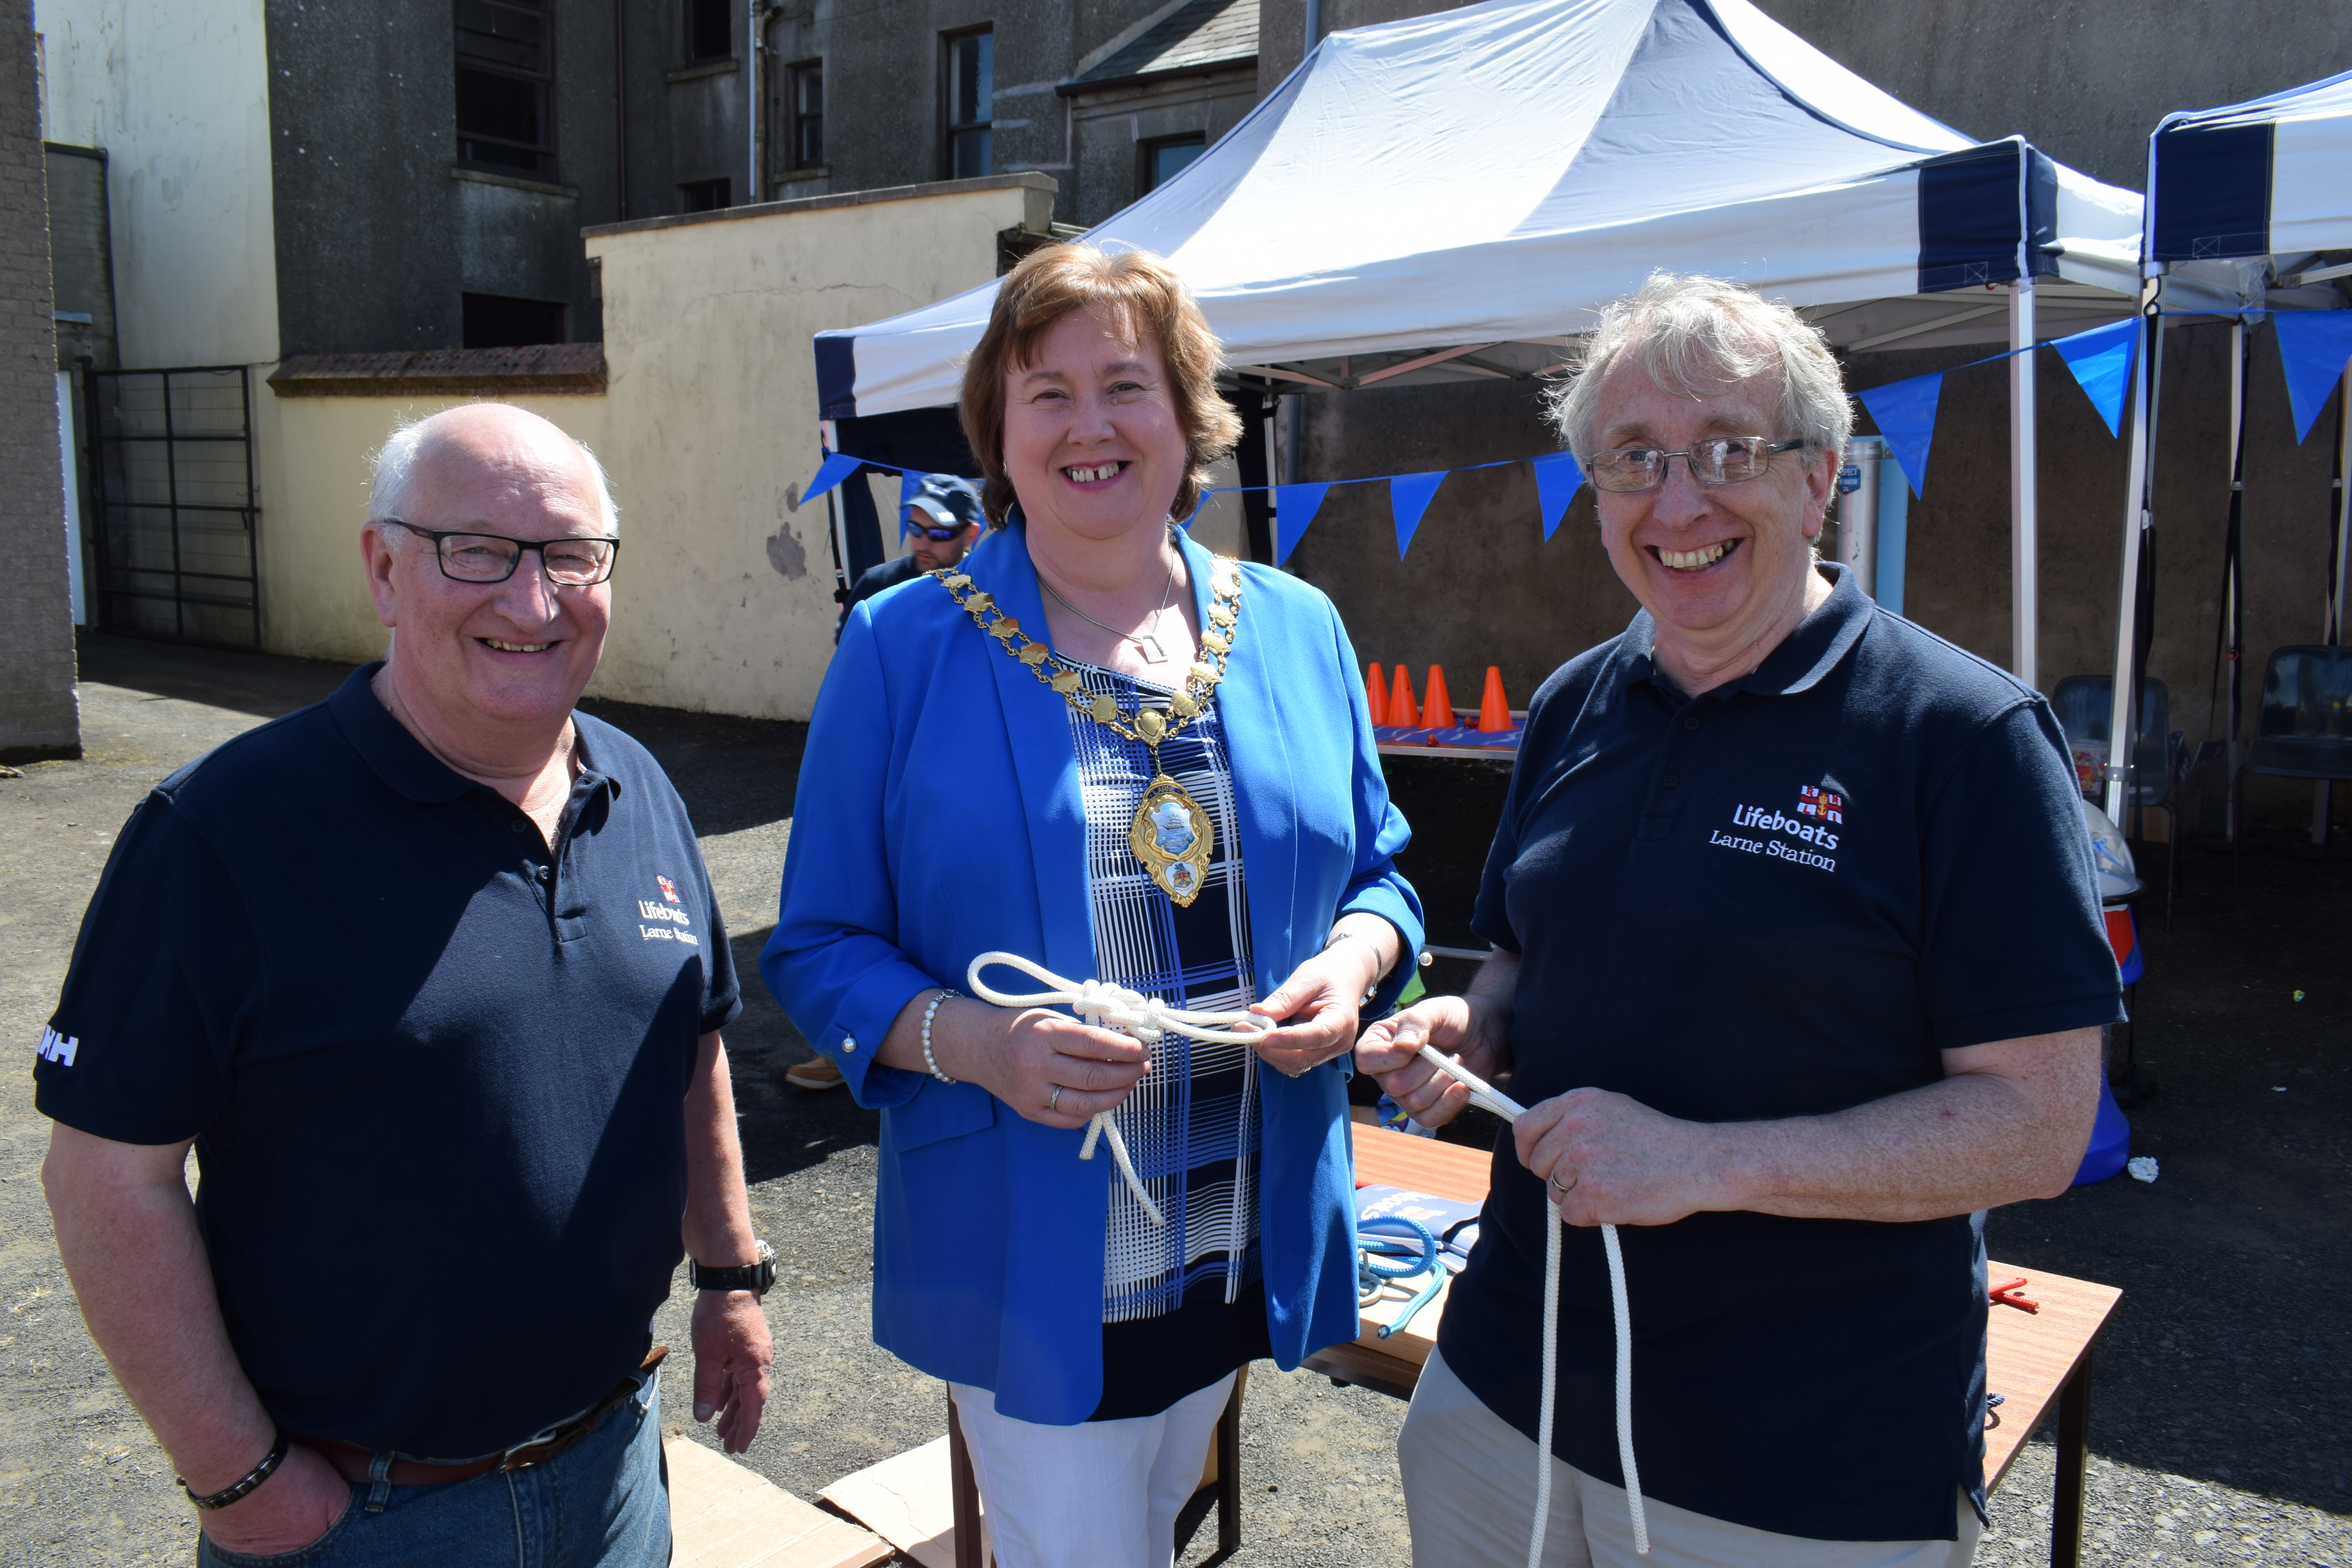 Mayor of Mid and East Antrim Cllr. Maureen Morrow learning some knot tying with crew member Stephen Craig and Lifeboat Operations Manager Allan Dorman